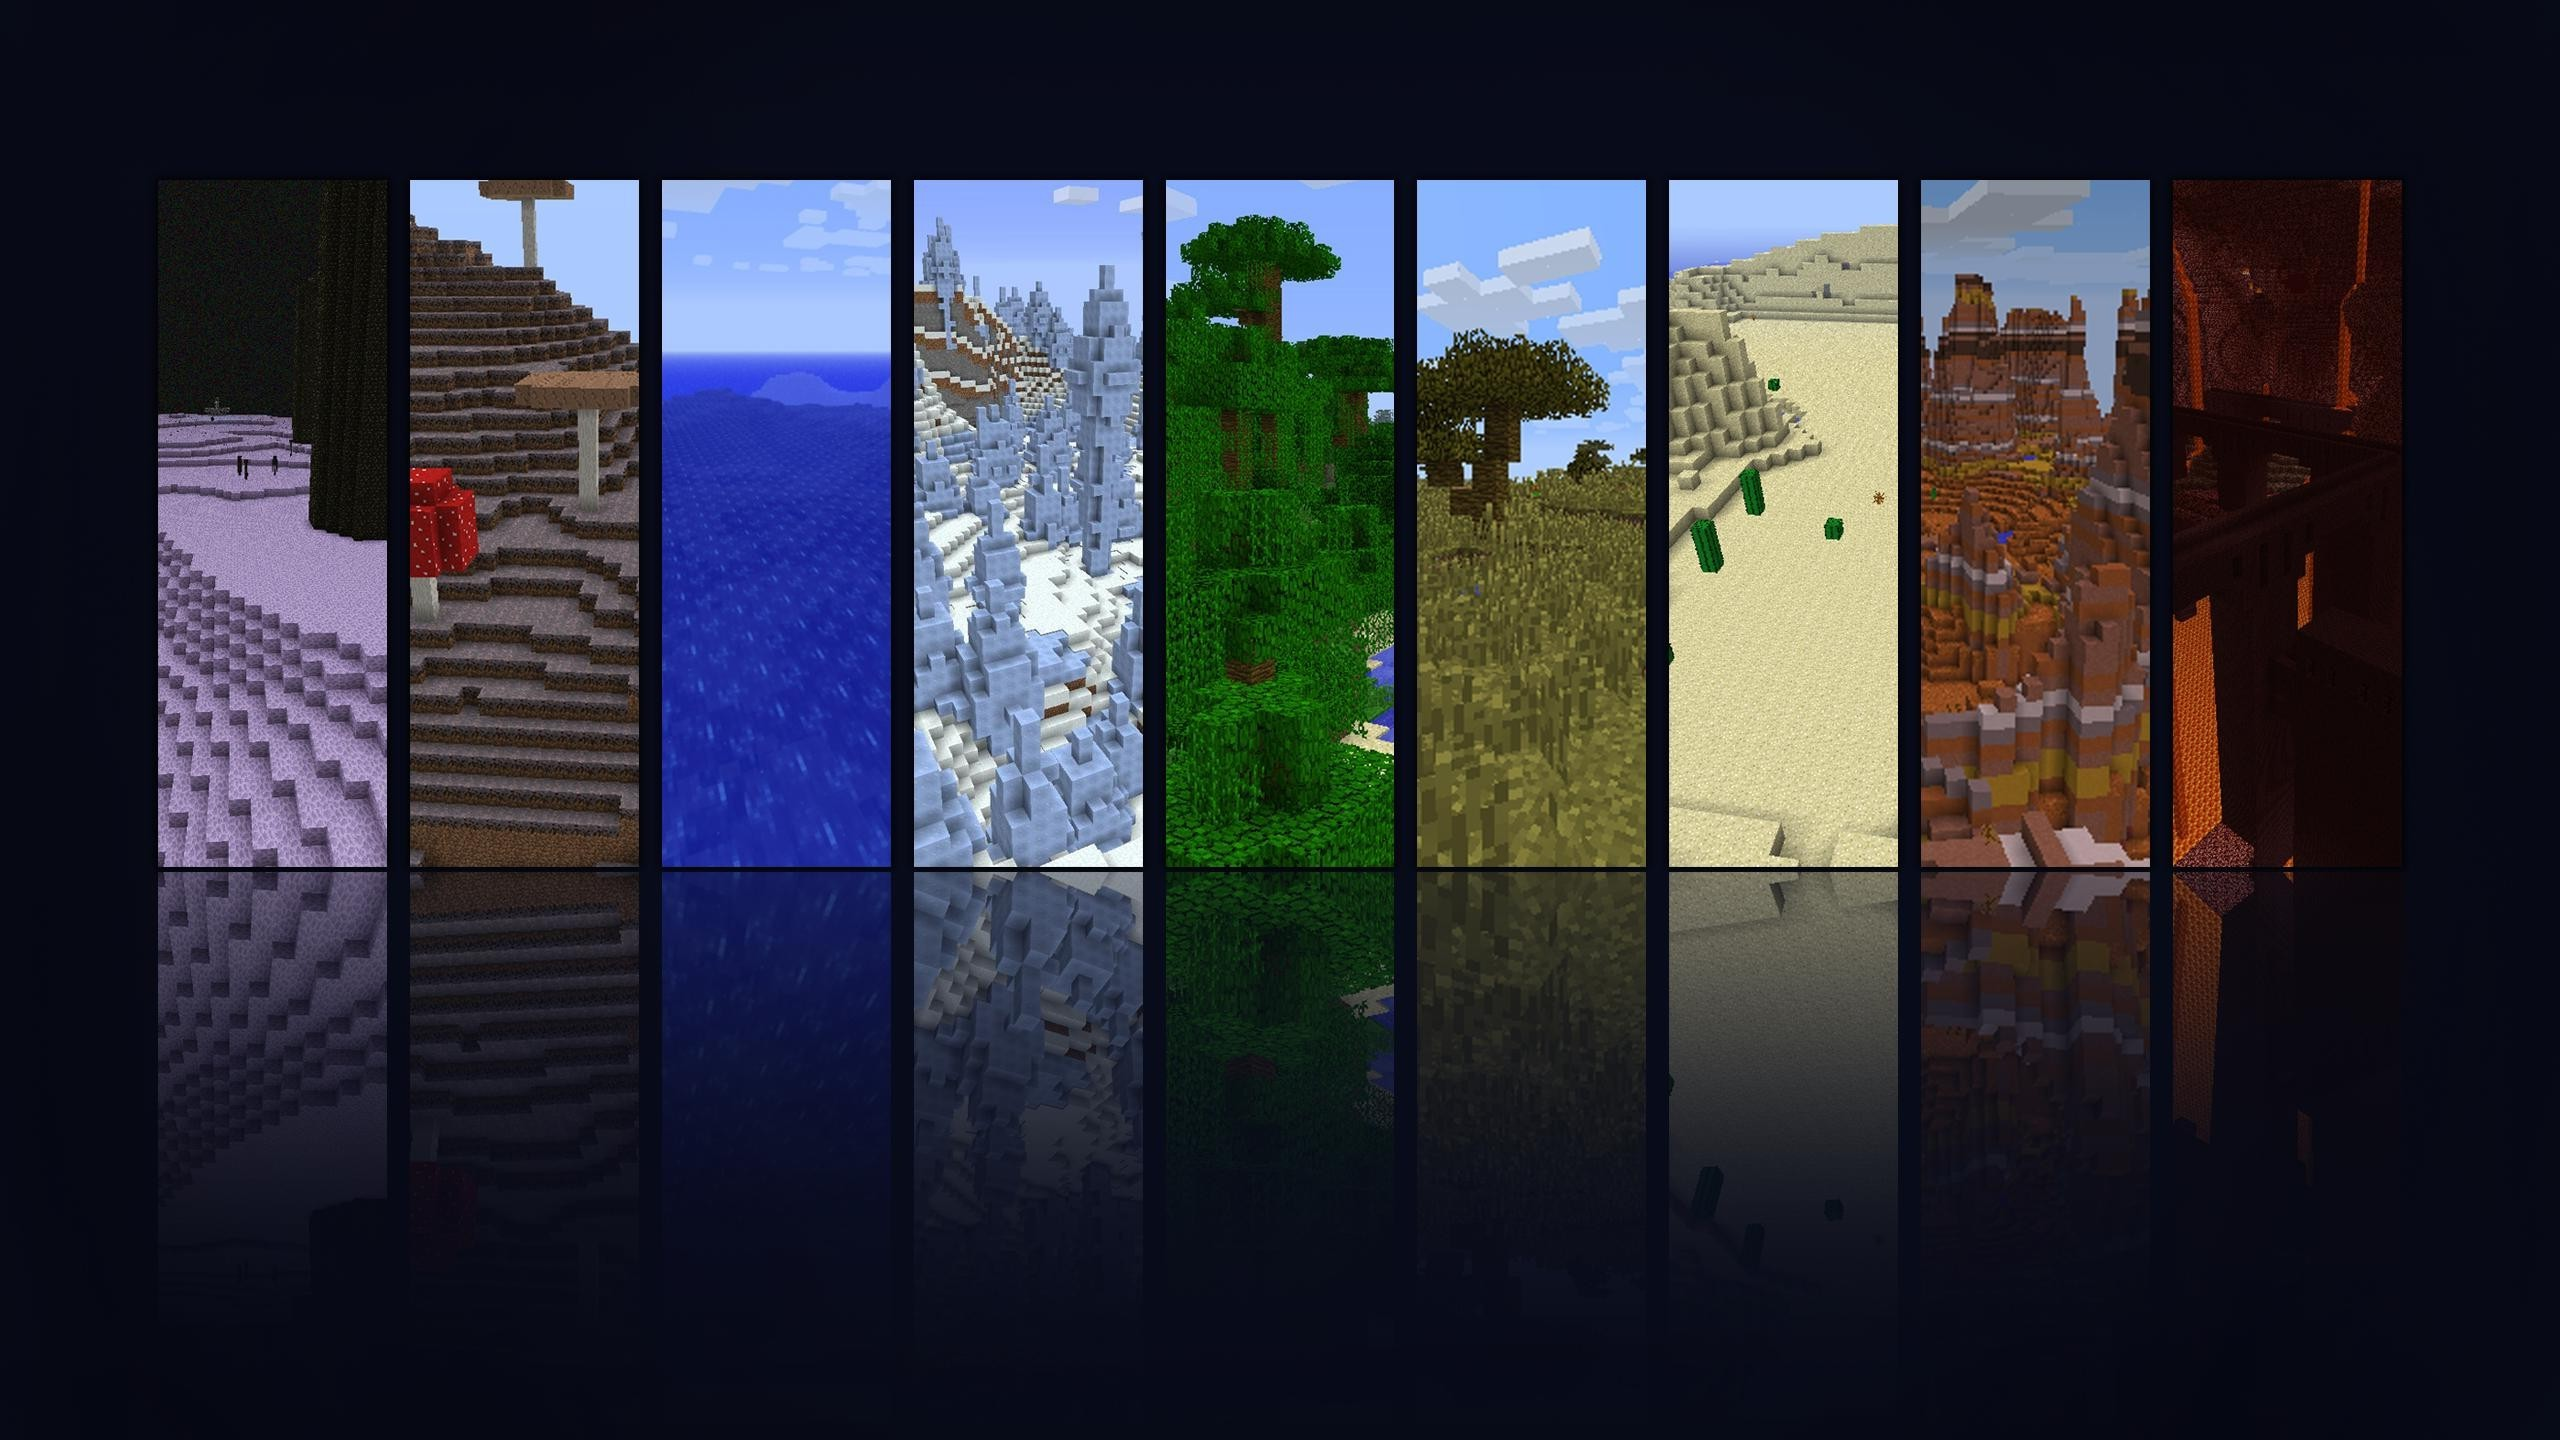 Minecraft Wallpaper 3d Herobrine Minecraft Video Games Wallpapers Hd Desktop And Mobile